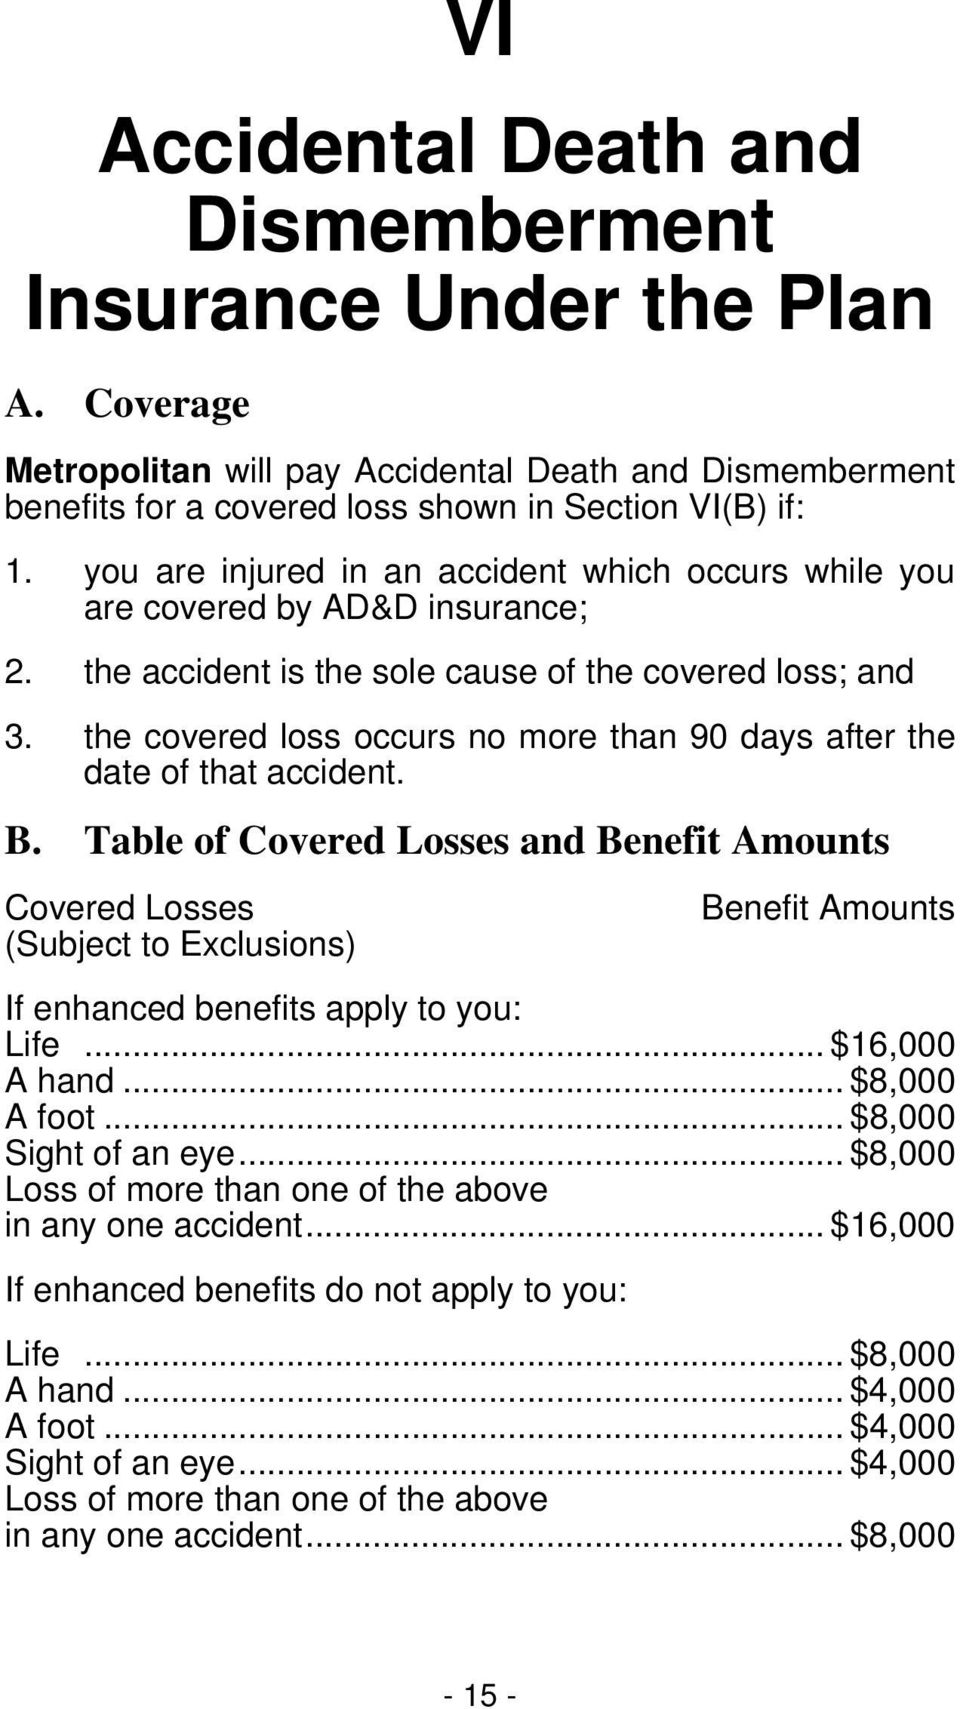 the covered loss occurs no more than 90 days after the date of that accident. B.